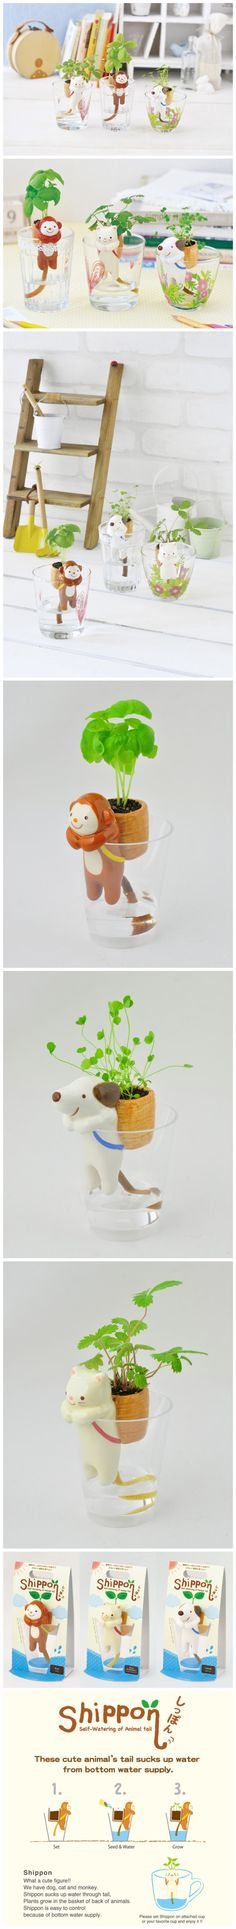 Self-watering of animals tail